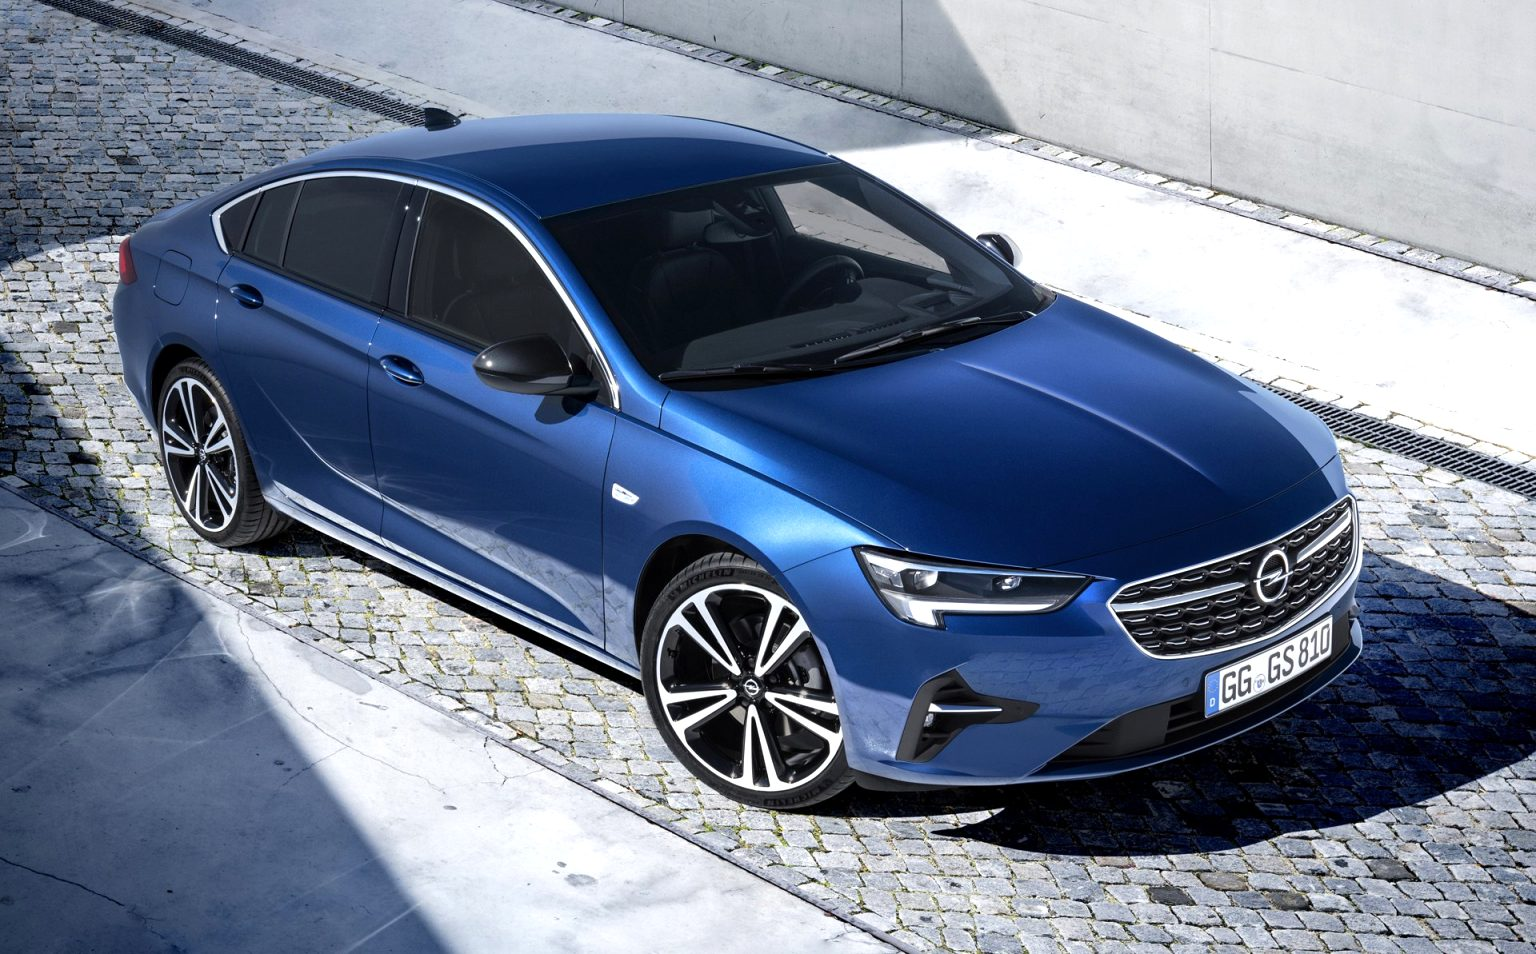 opel insignia 2021 price in uae Overview